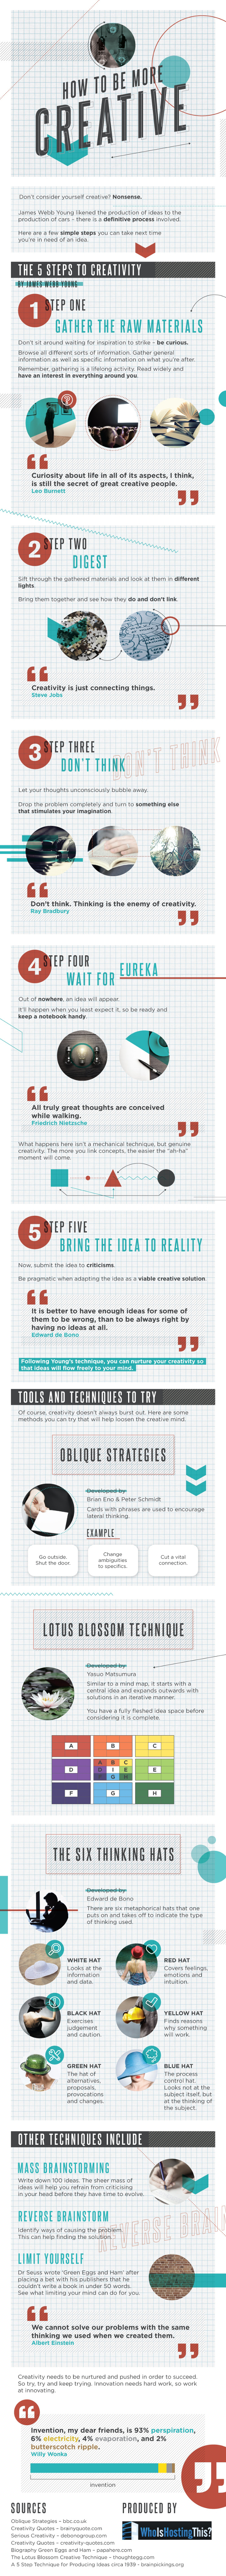 6 Strategies for Creative Thinking Infographic